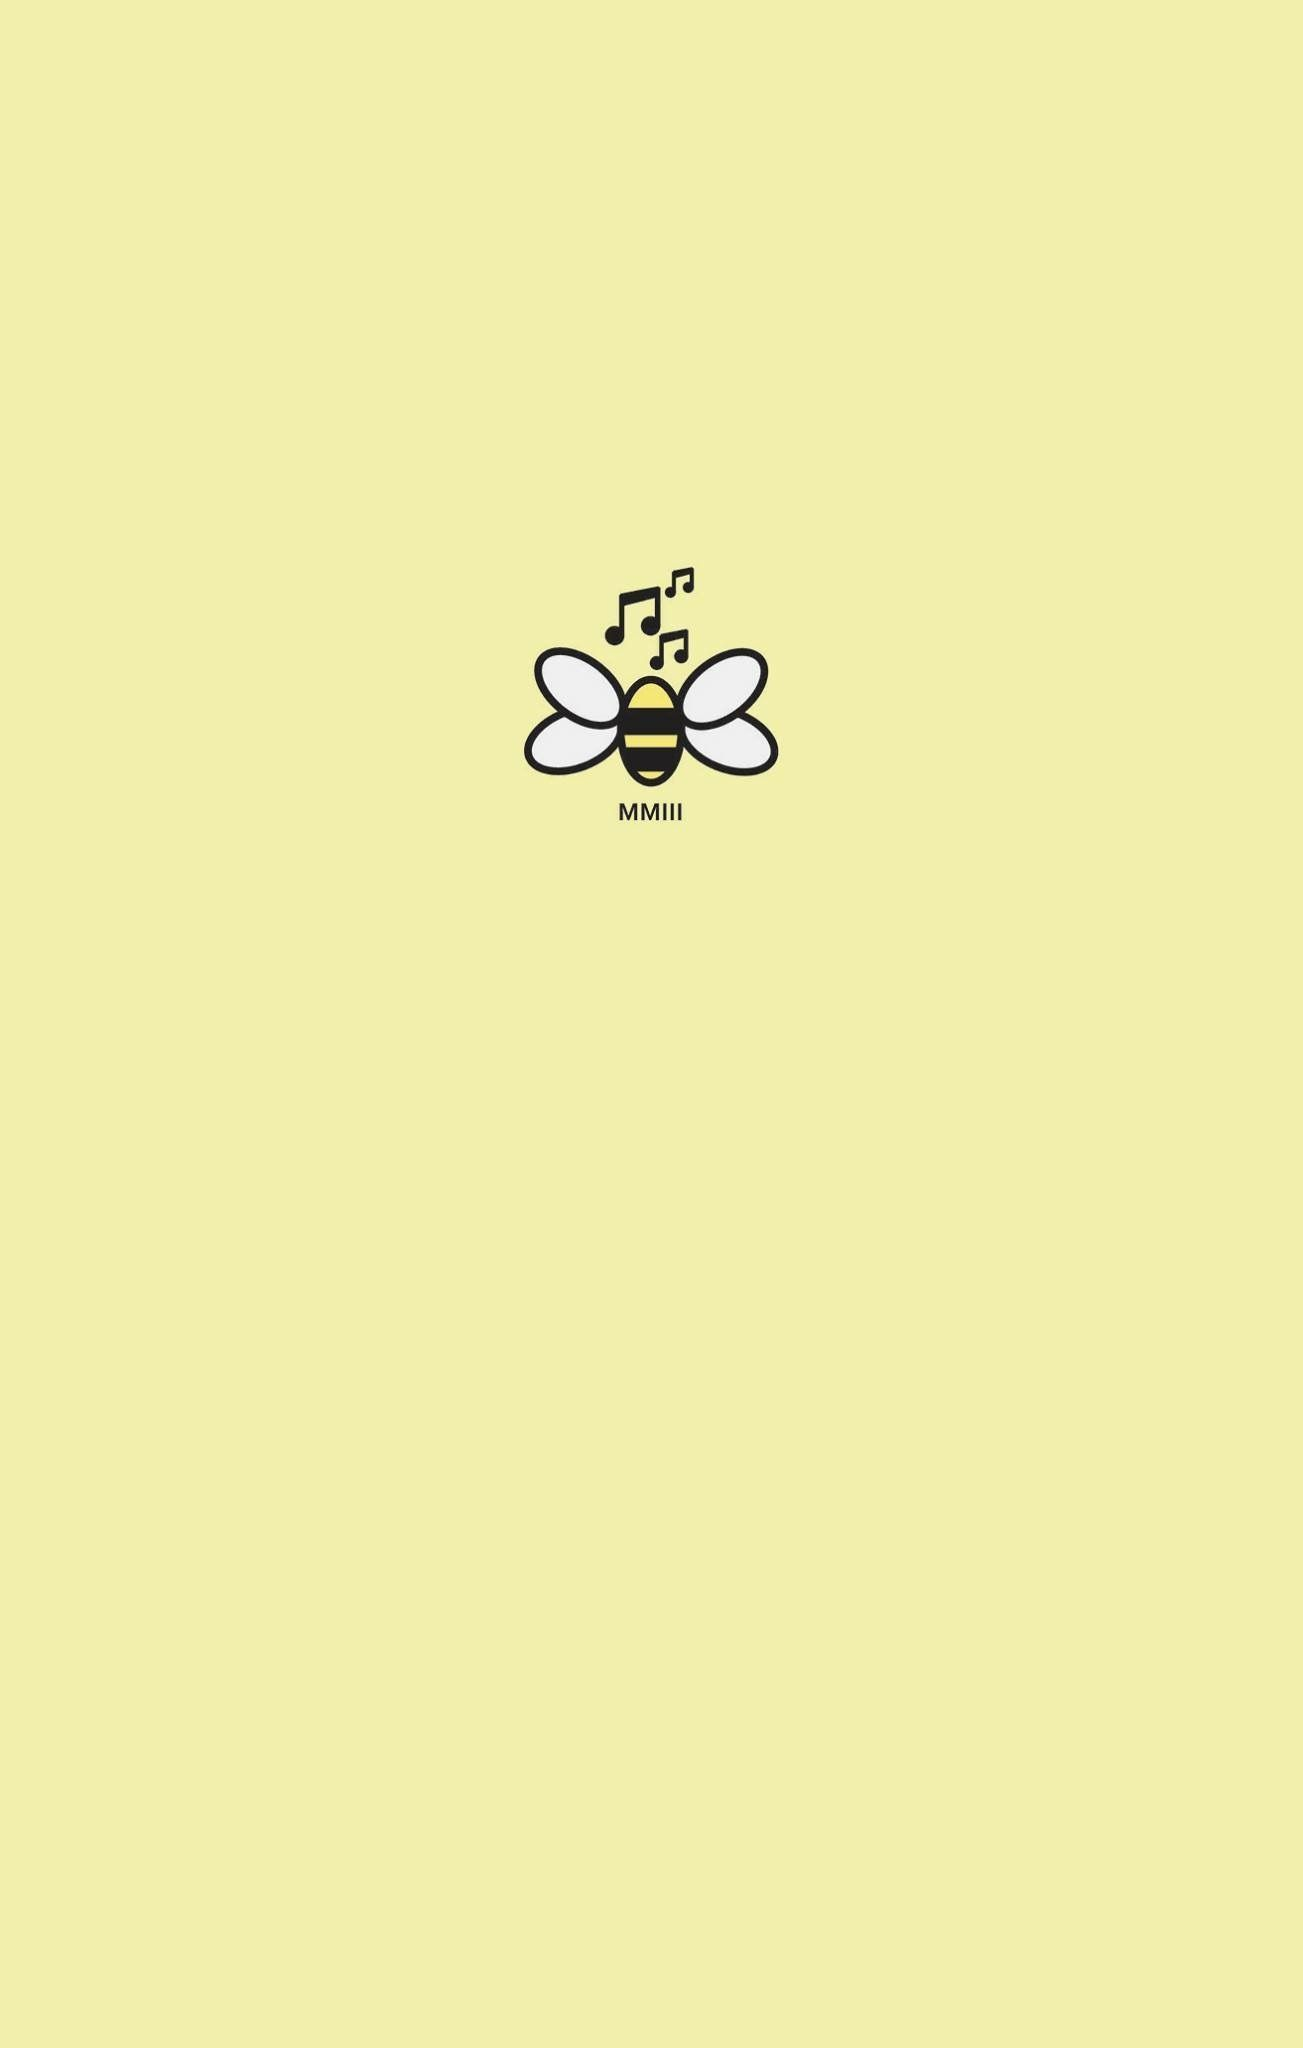 Cute Bees Wallpapers - Wallpaper Cave